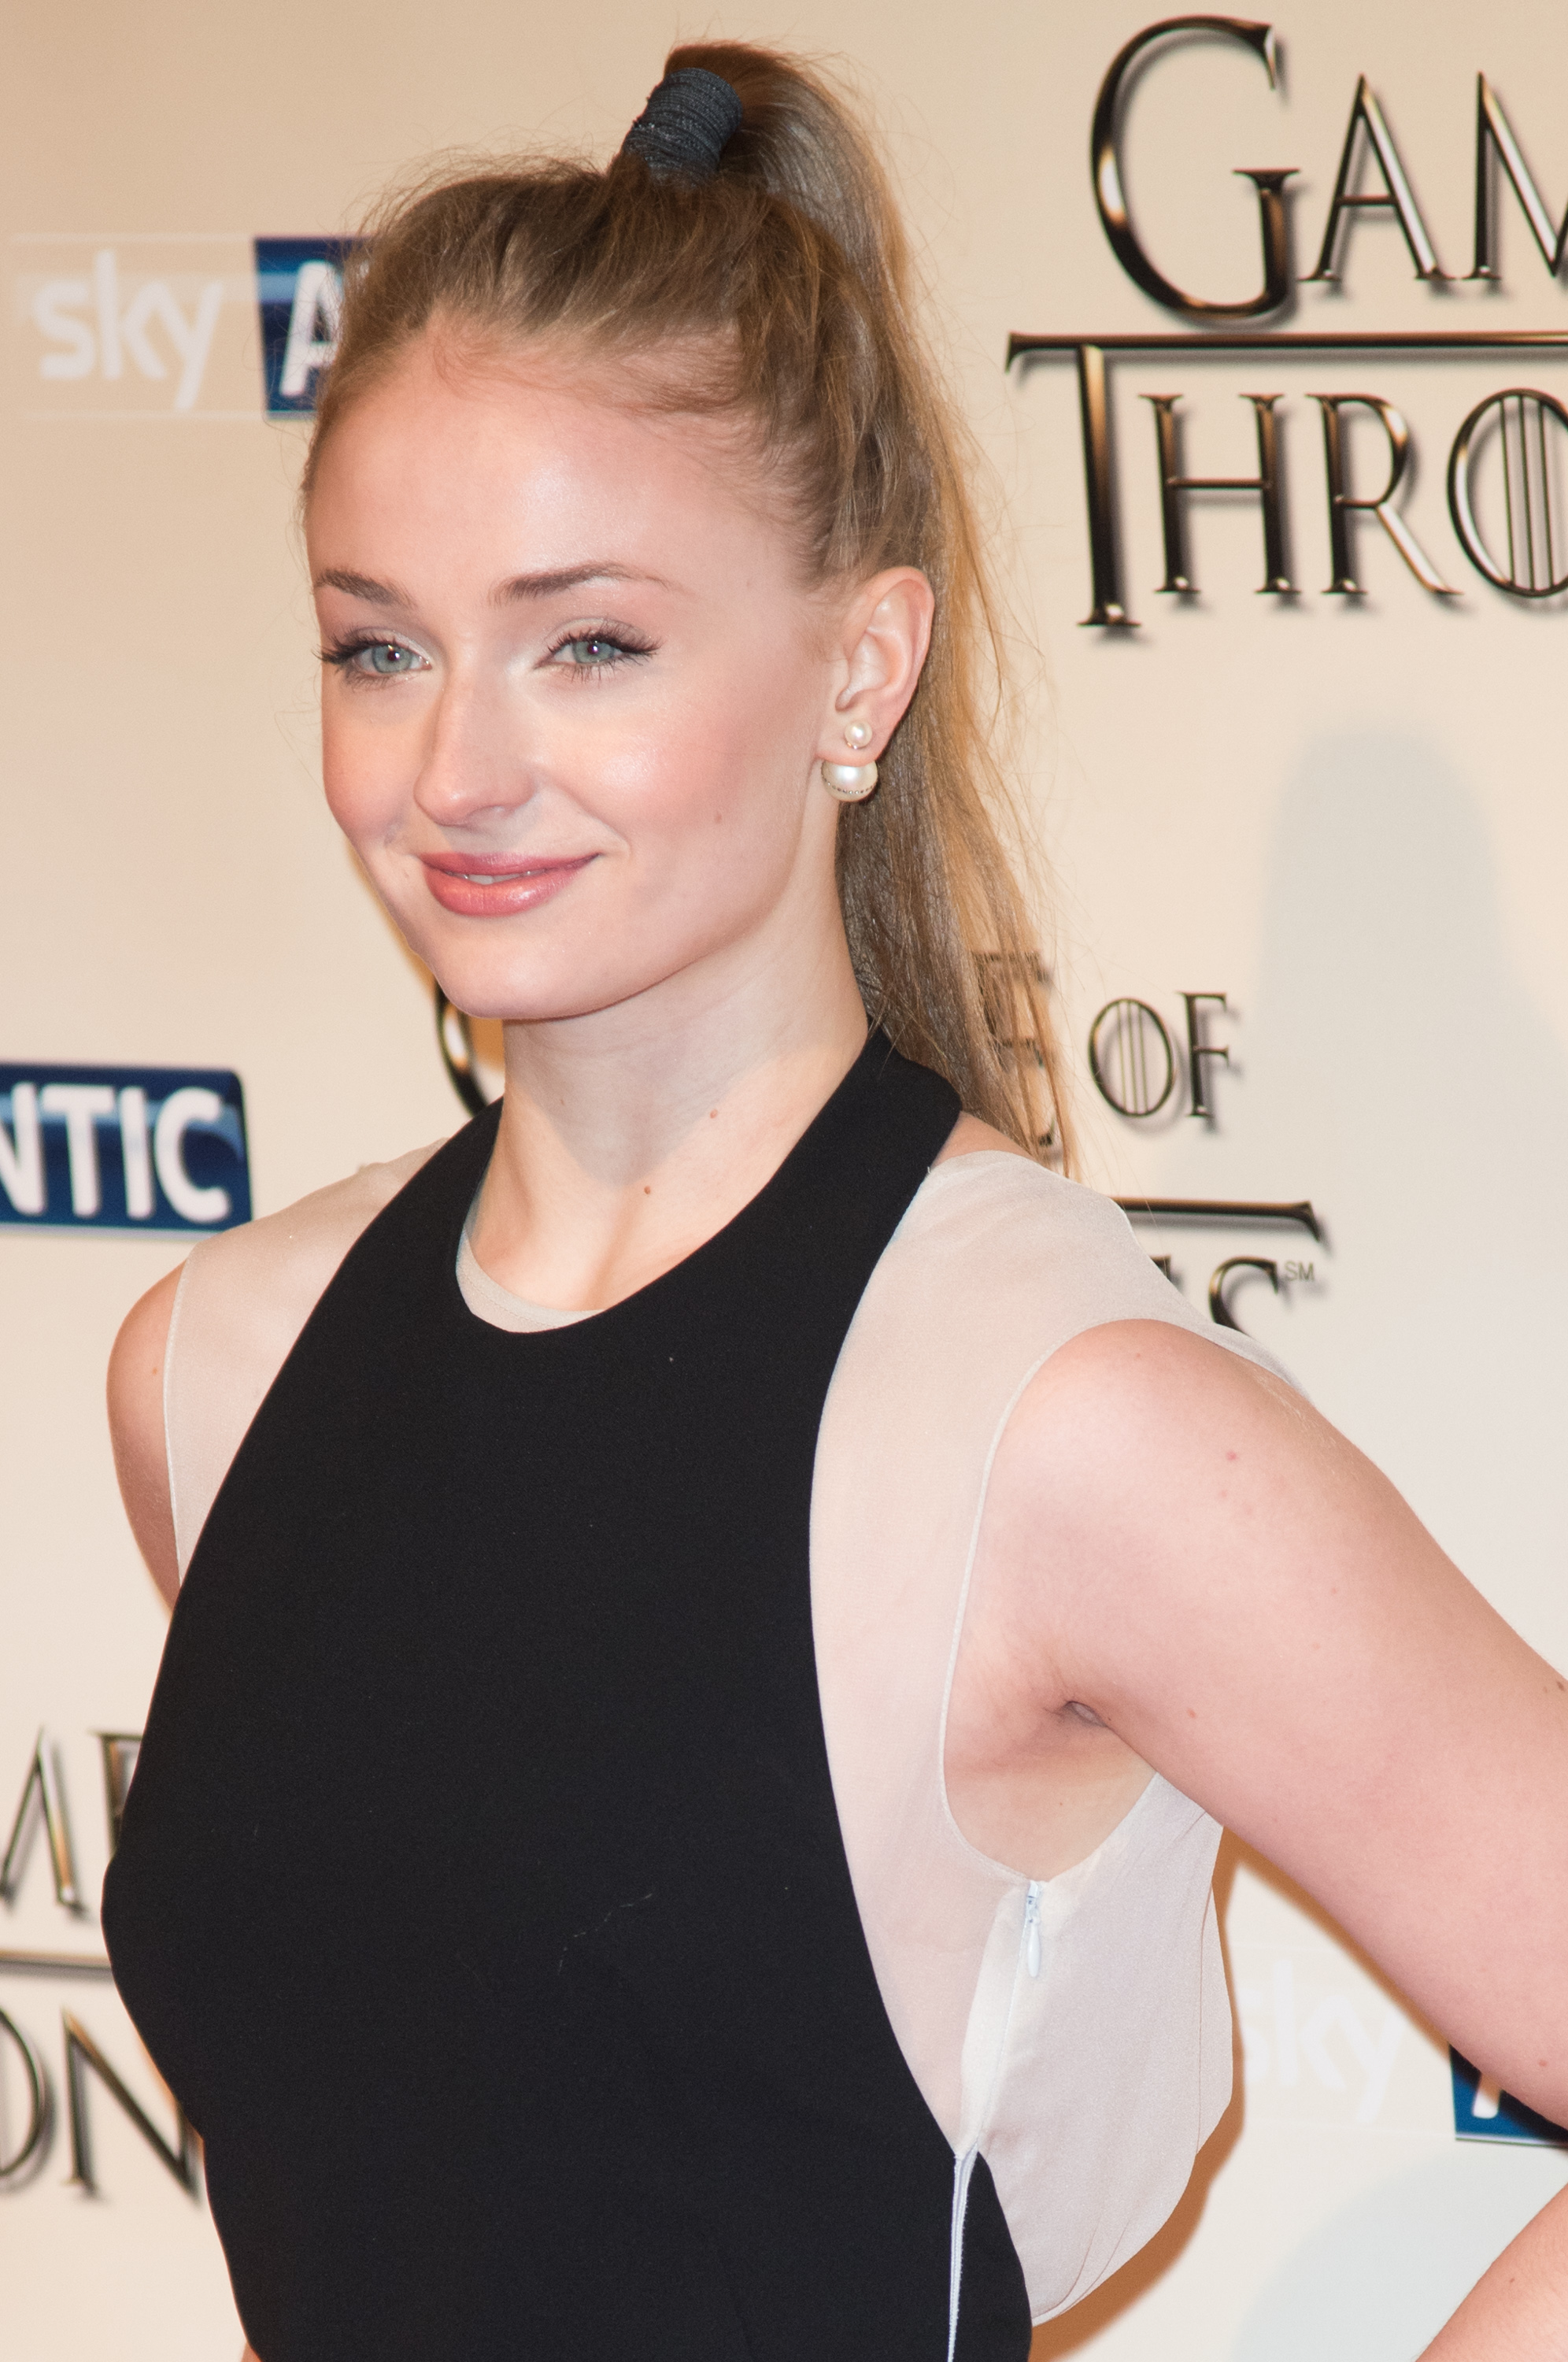 sophie turner actress sophie turner actress photo 480 0 vote